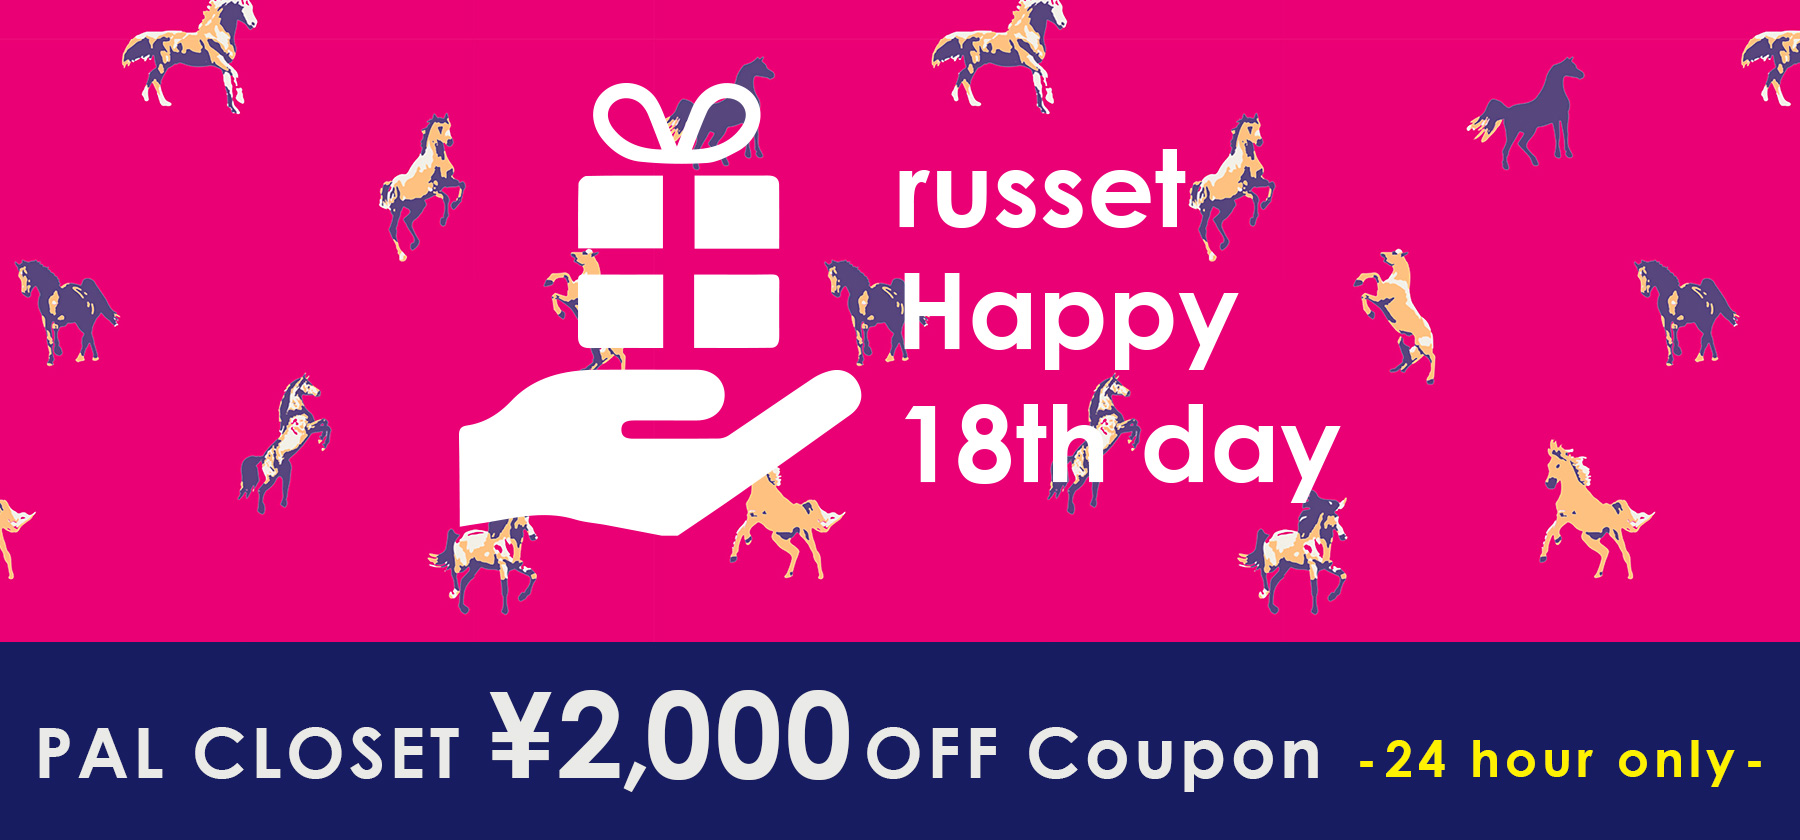 russet Happy 18th Day